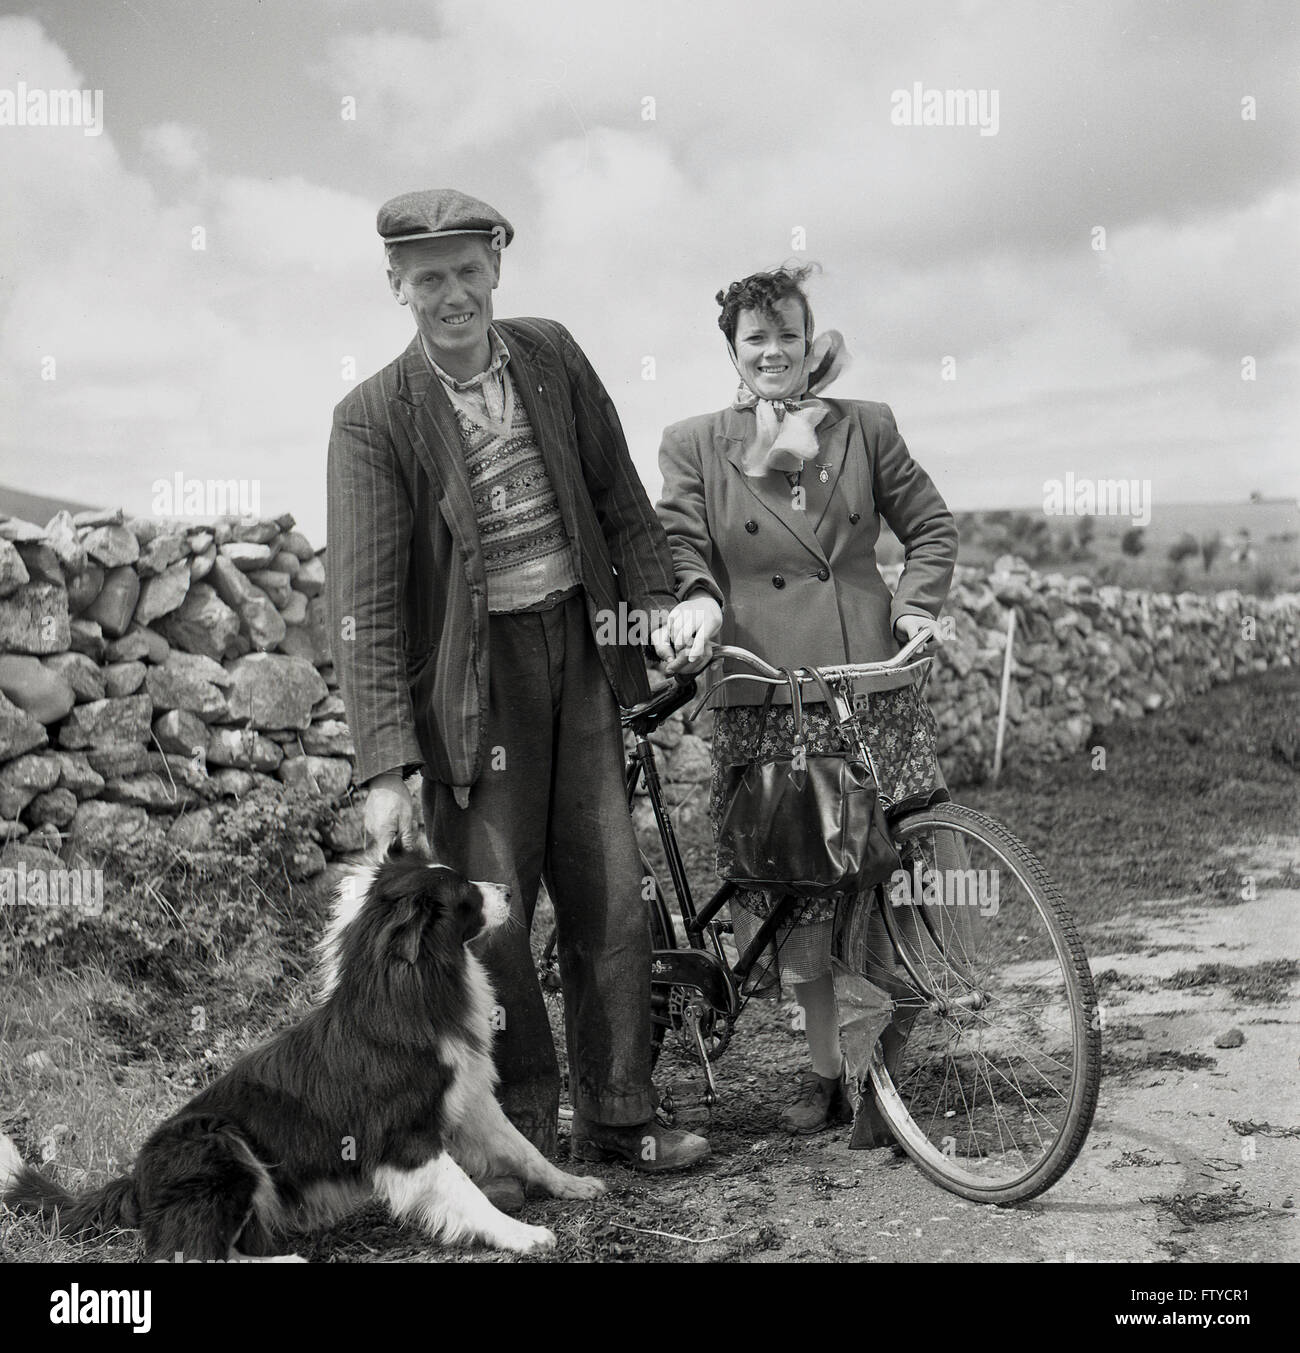 1950s historical, West of Ireland, Irish farmer with sheep dog and wife with bicycle stop on country lane for their - Stock Image